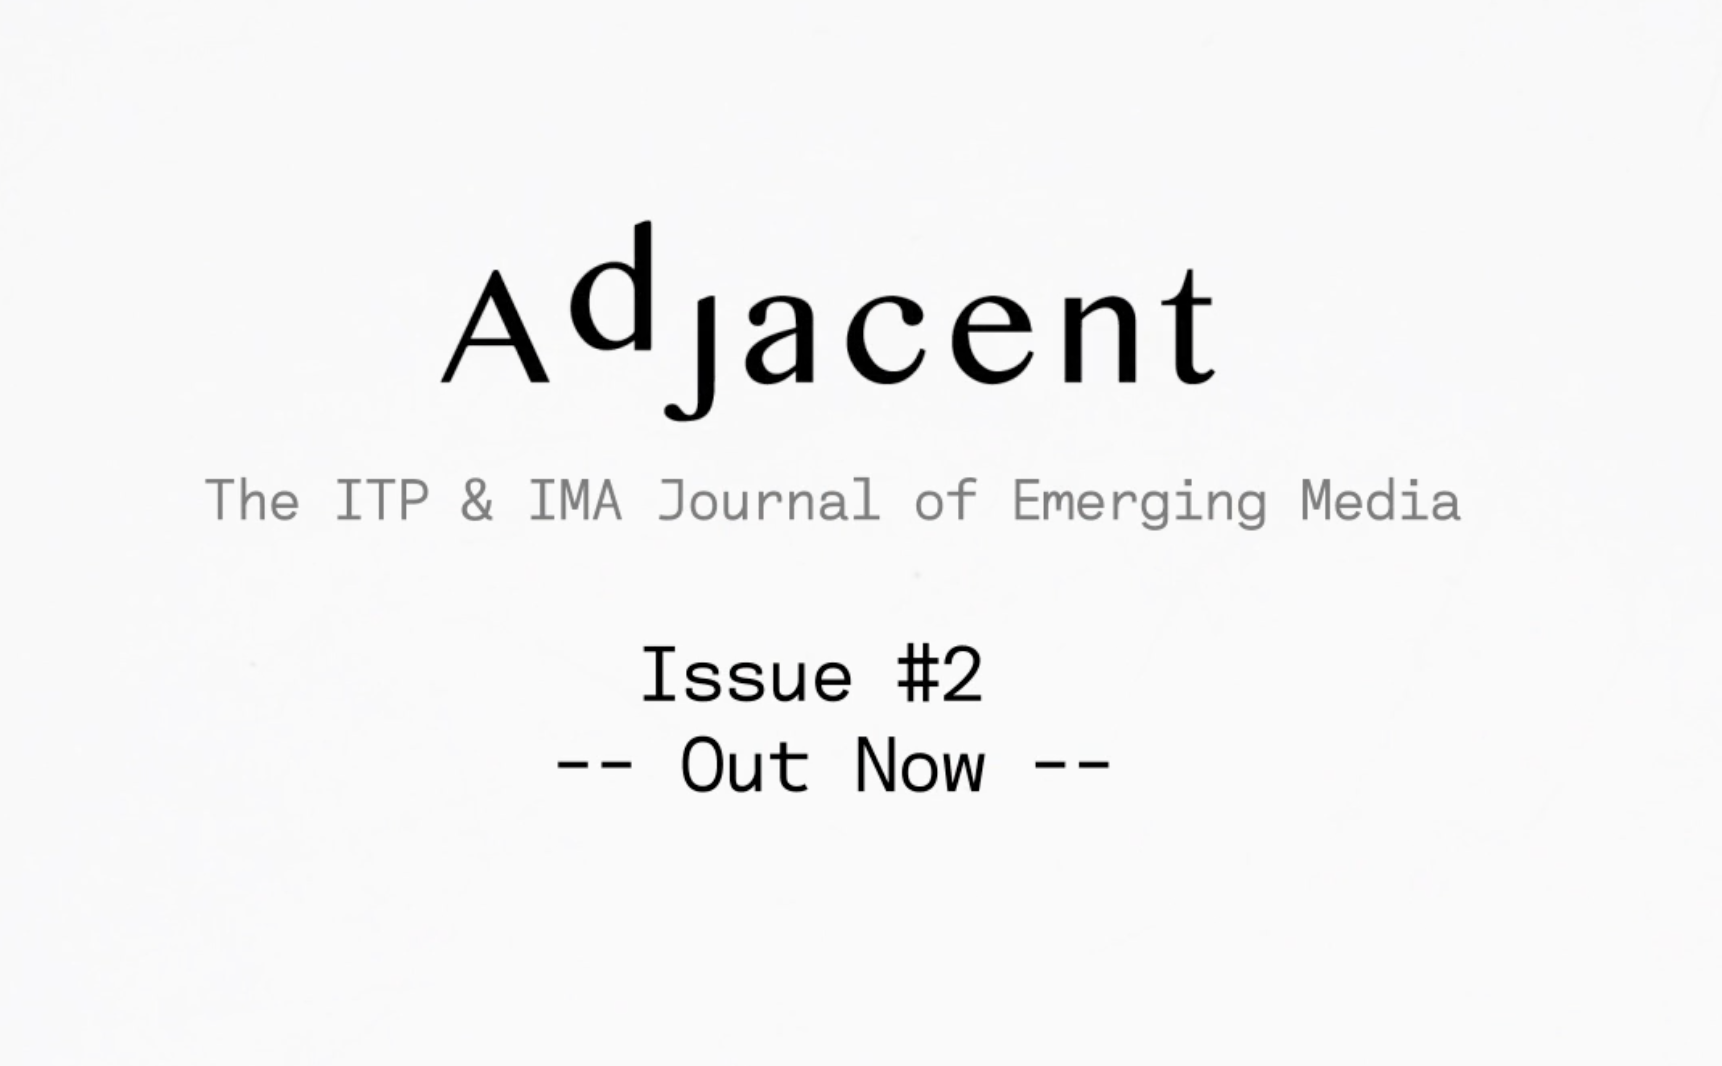 Adjacent, the ITP and IMA Journal of Emerging Media